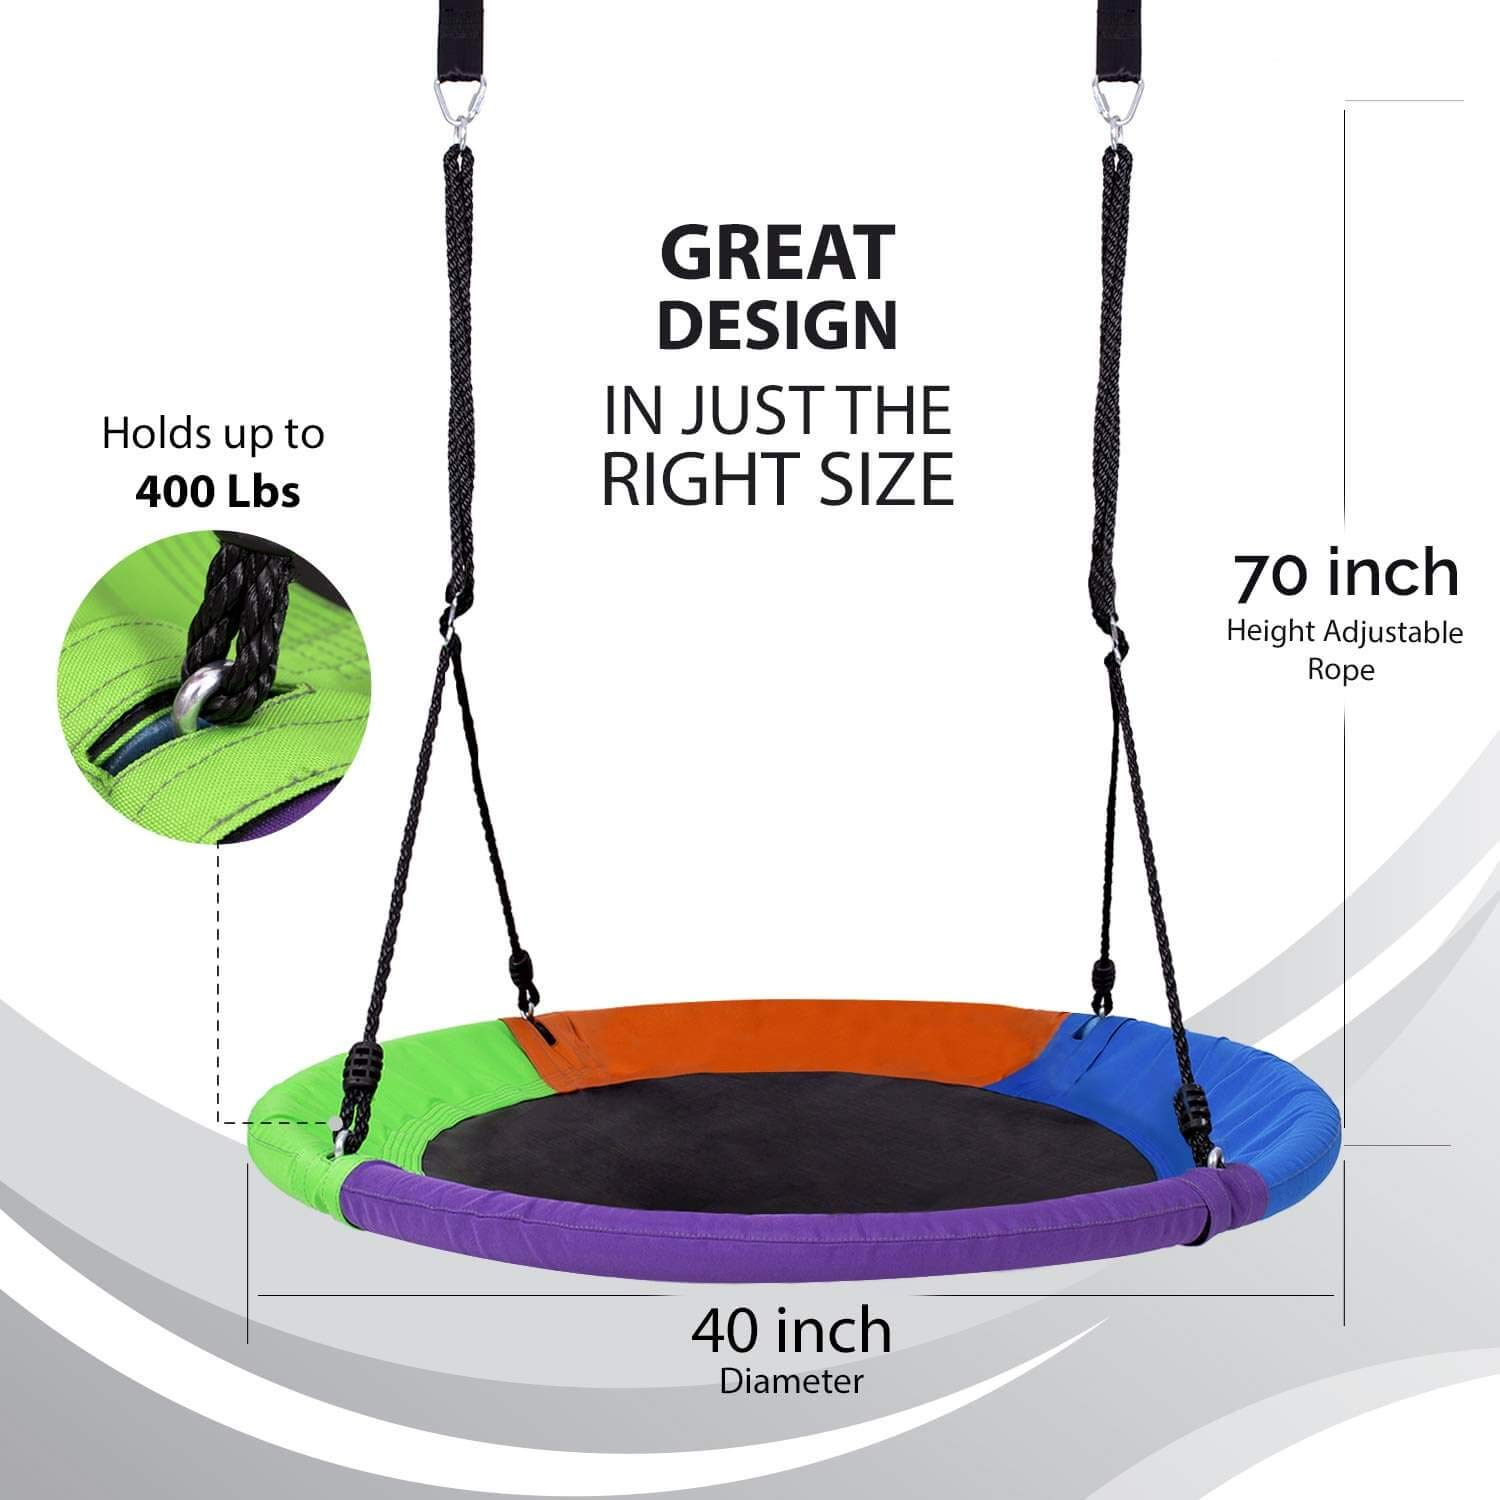 Outdoor Round Tree Swing for Kids - 40'' Saucer Tree Swing for Kids-Large Tree Swings for Children - 400 lbs Tree Swings for Outside with Hanging Kit by Hazli (Image #3)